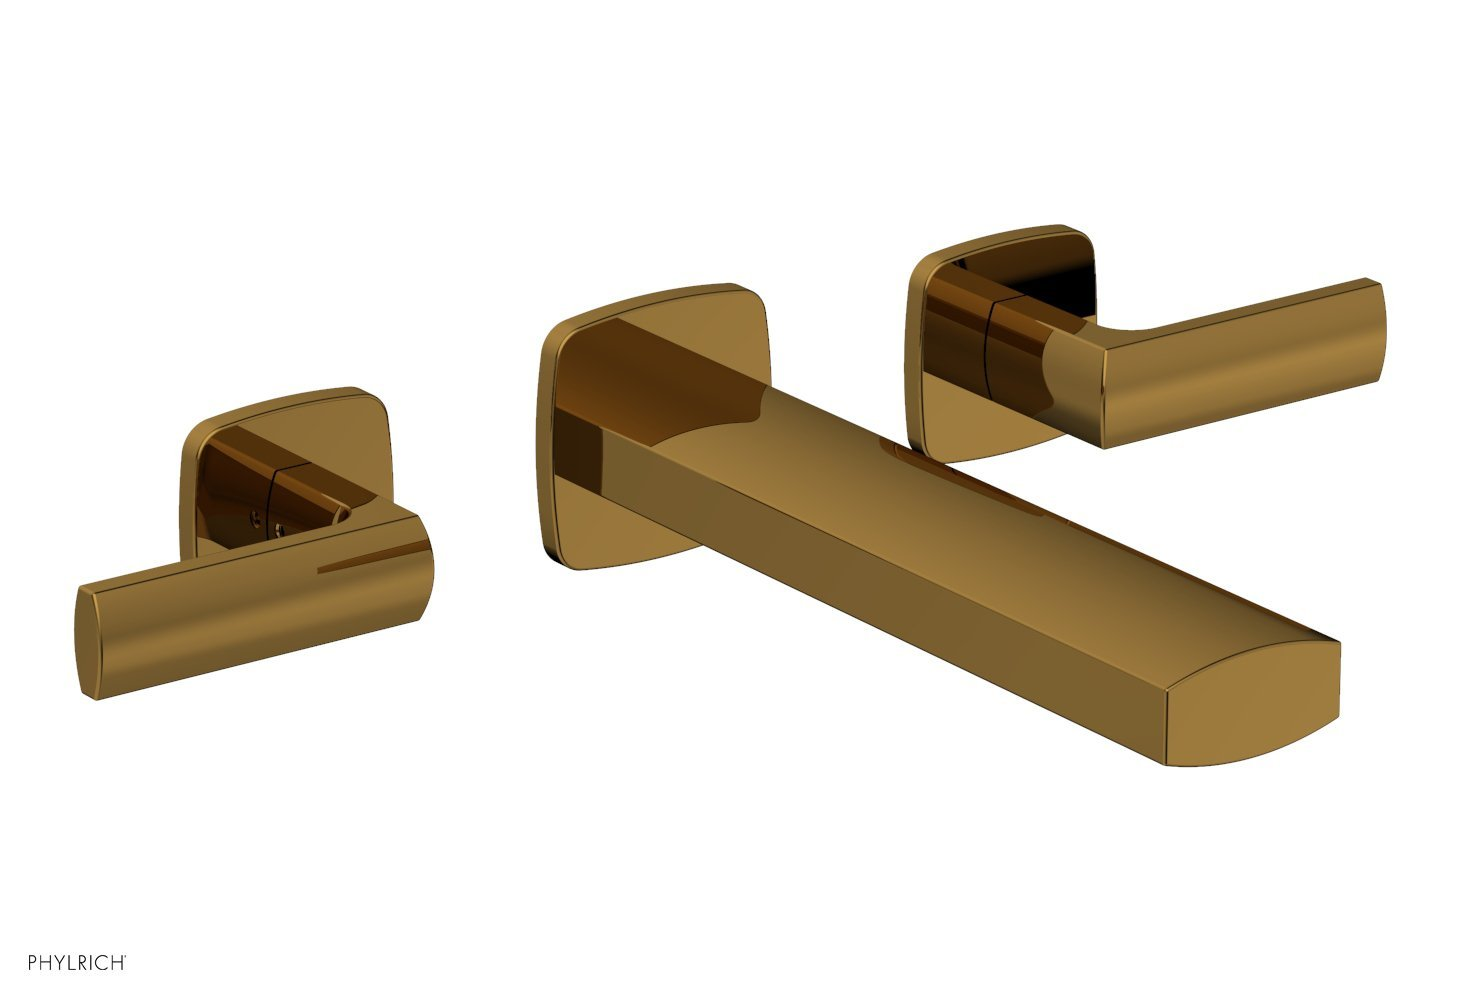 Phylrich 181-57-002 RADI Wall Tub Set - Lever Handles - French Brass